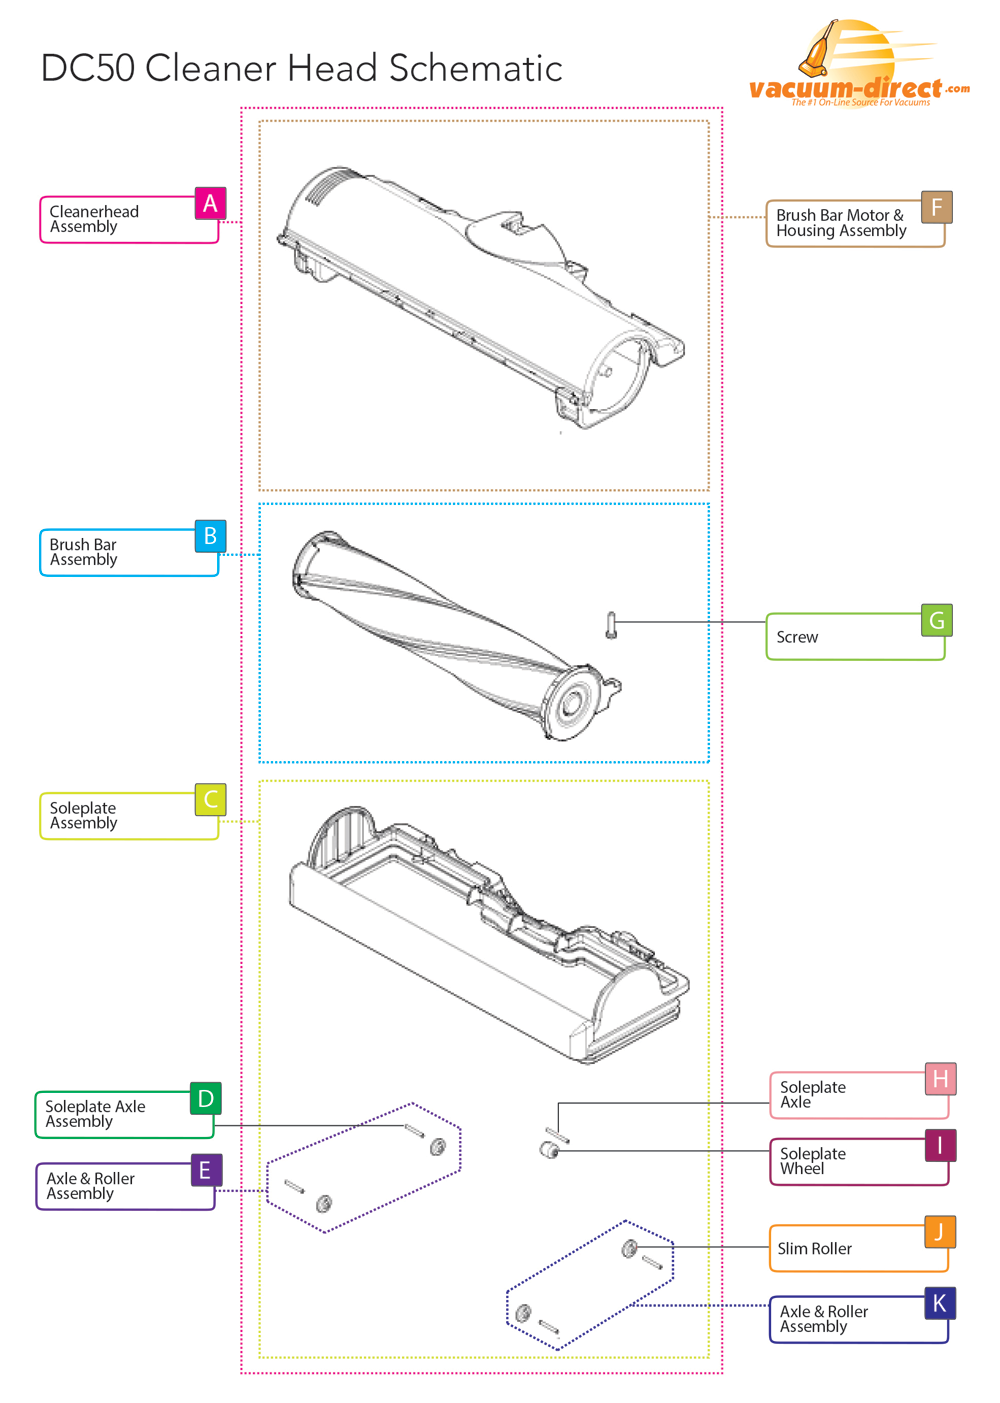 Dyson DC50 Cleanerhead Parts Diagram